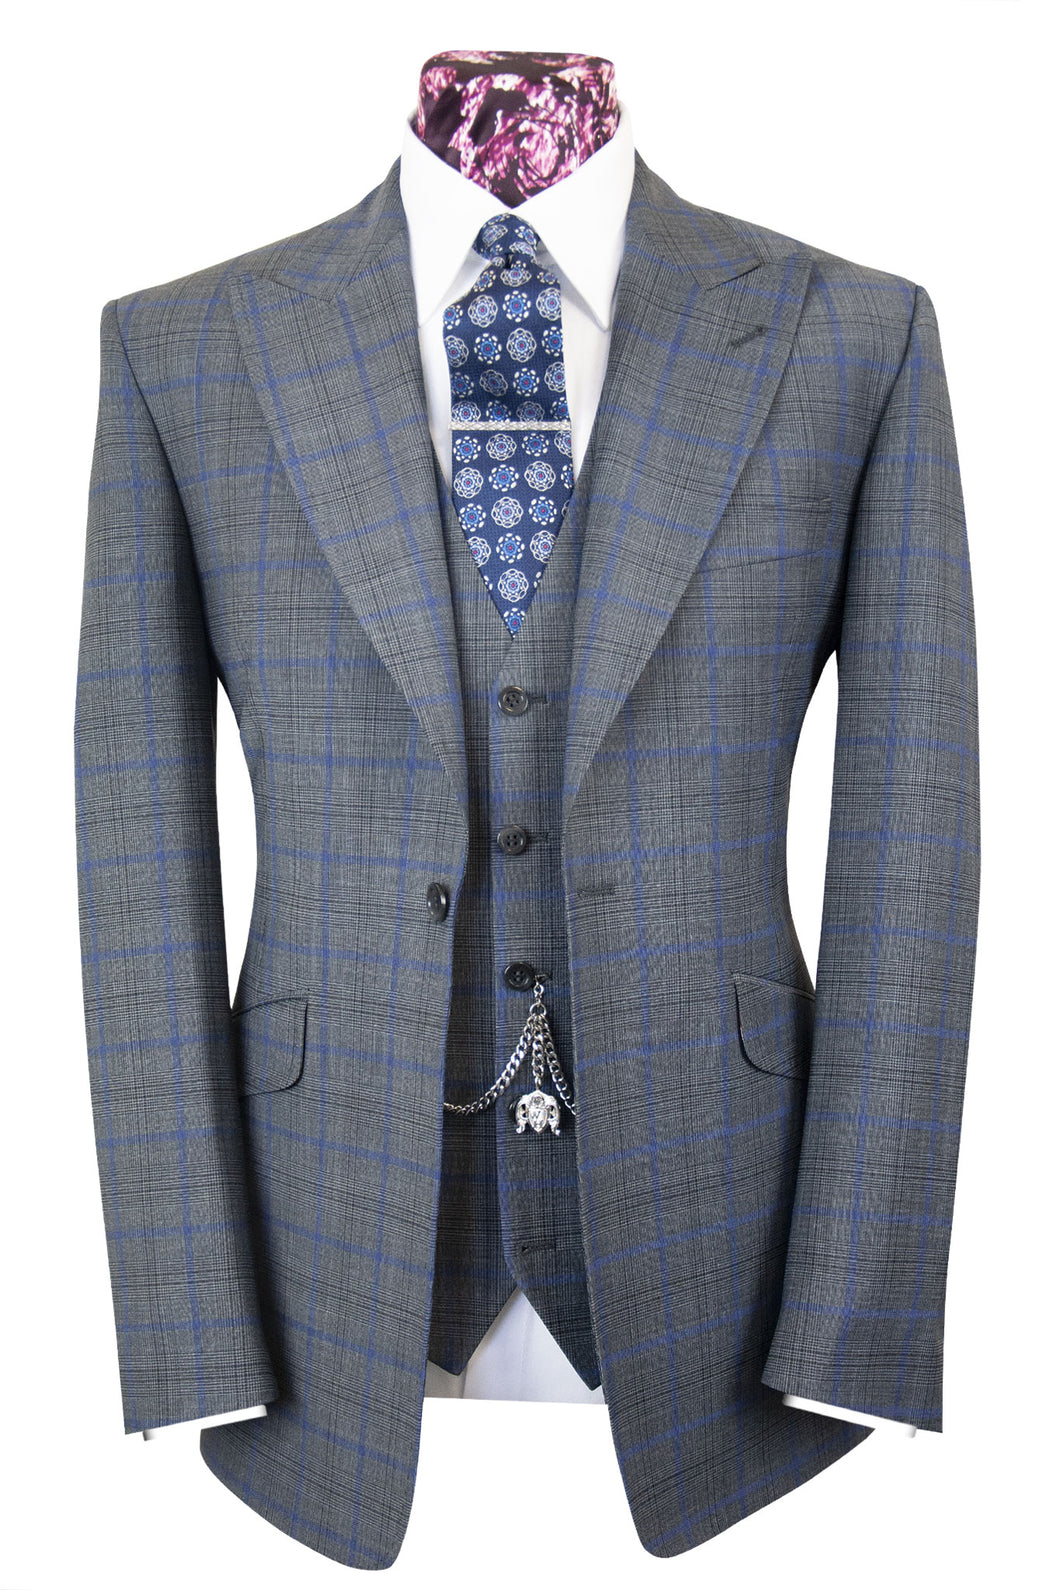 The Oseman Pewter Grey Suit with Blue and Black Over Check